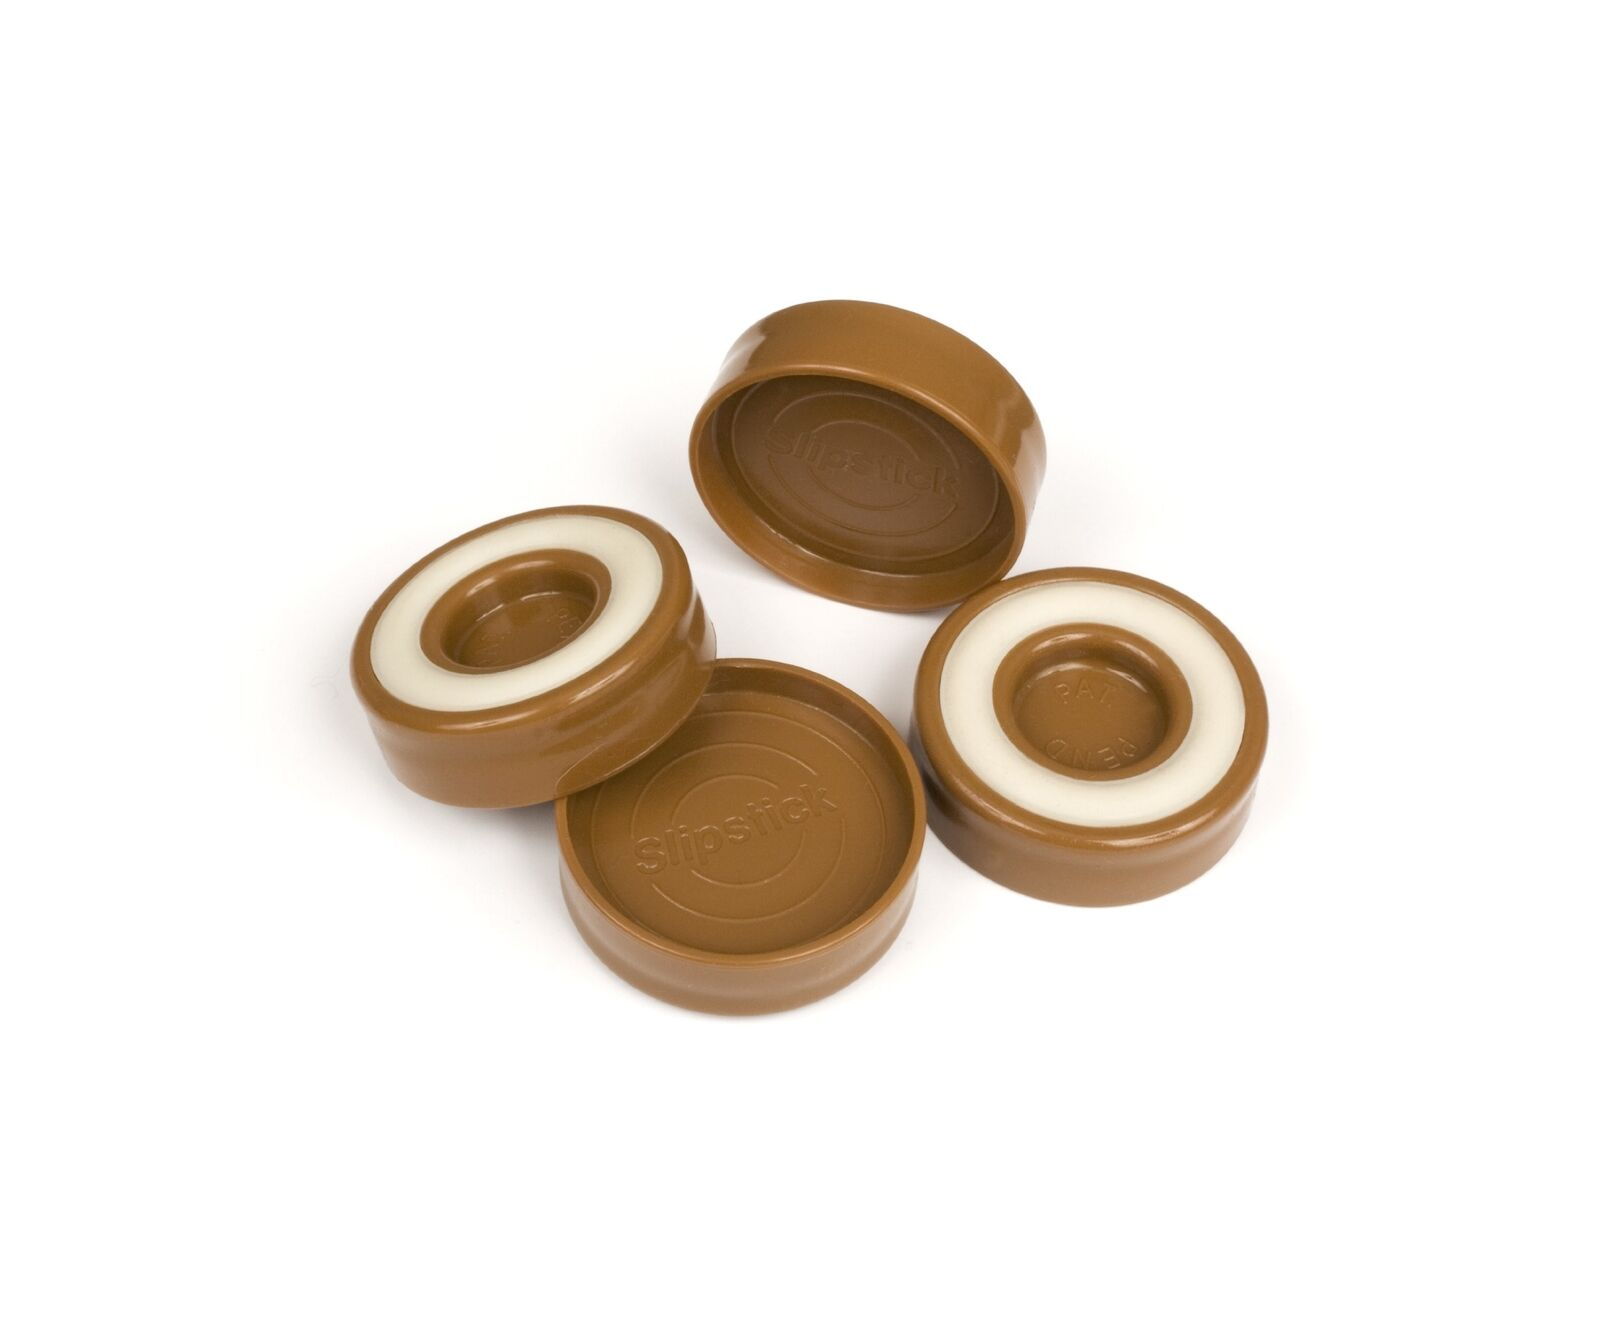 SLIPSTICK GRIPPER 45mm FLOOR COASTERS Protect Floor Allows Furniture Moving